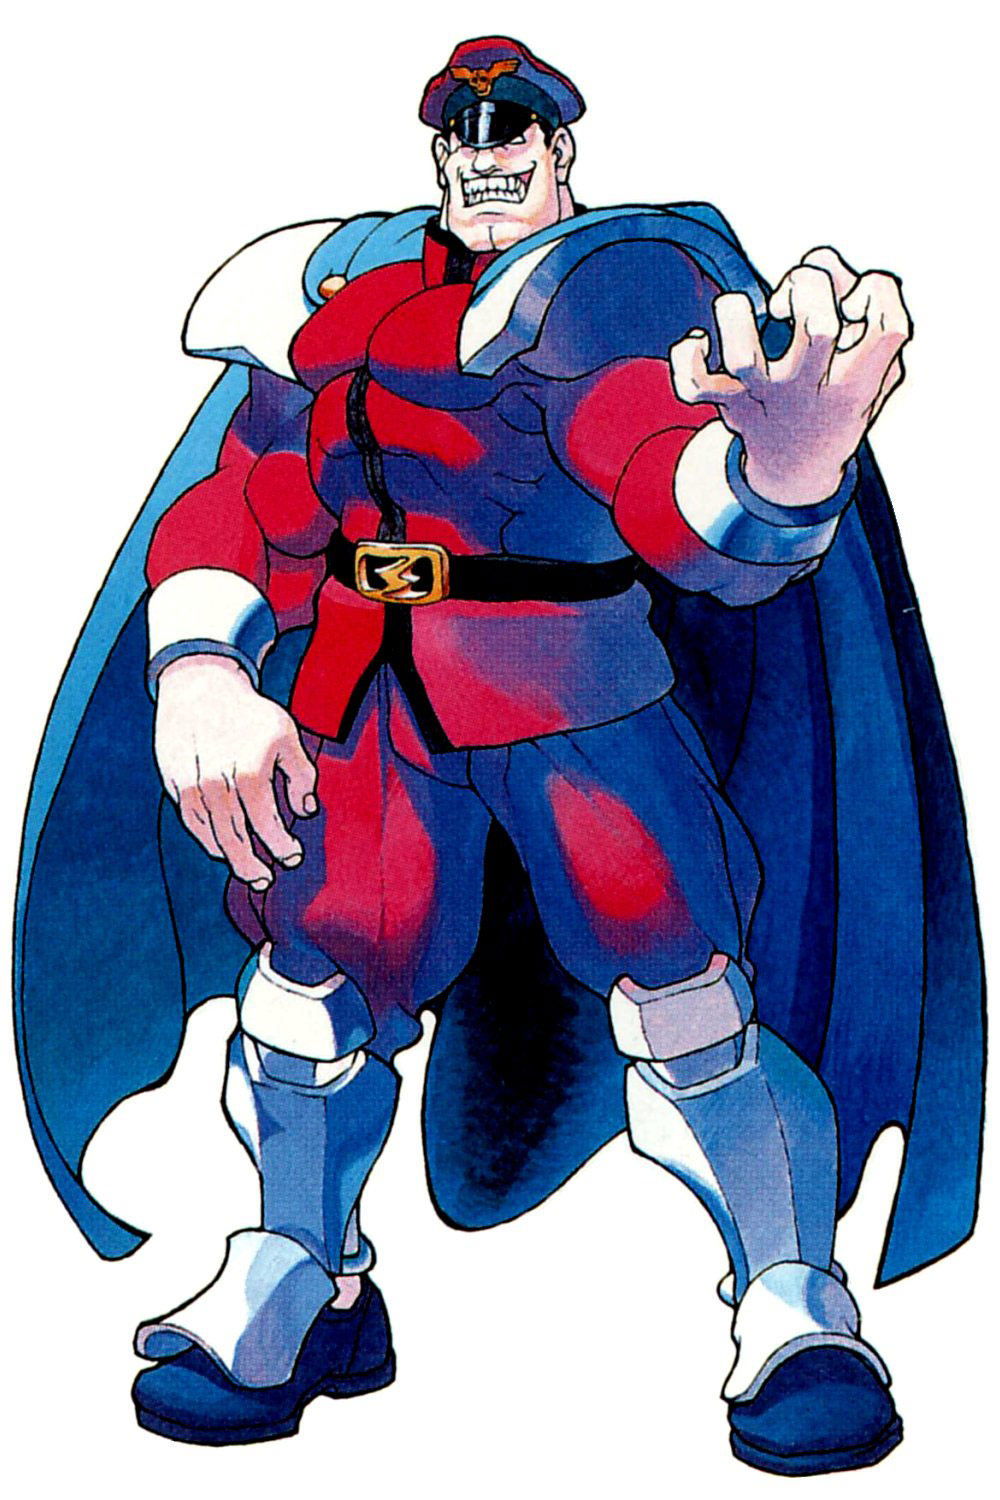 M Bison  The Fighters Generation